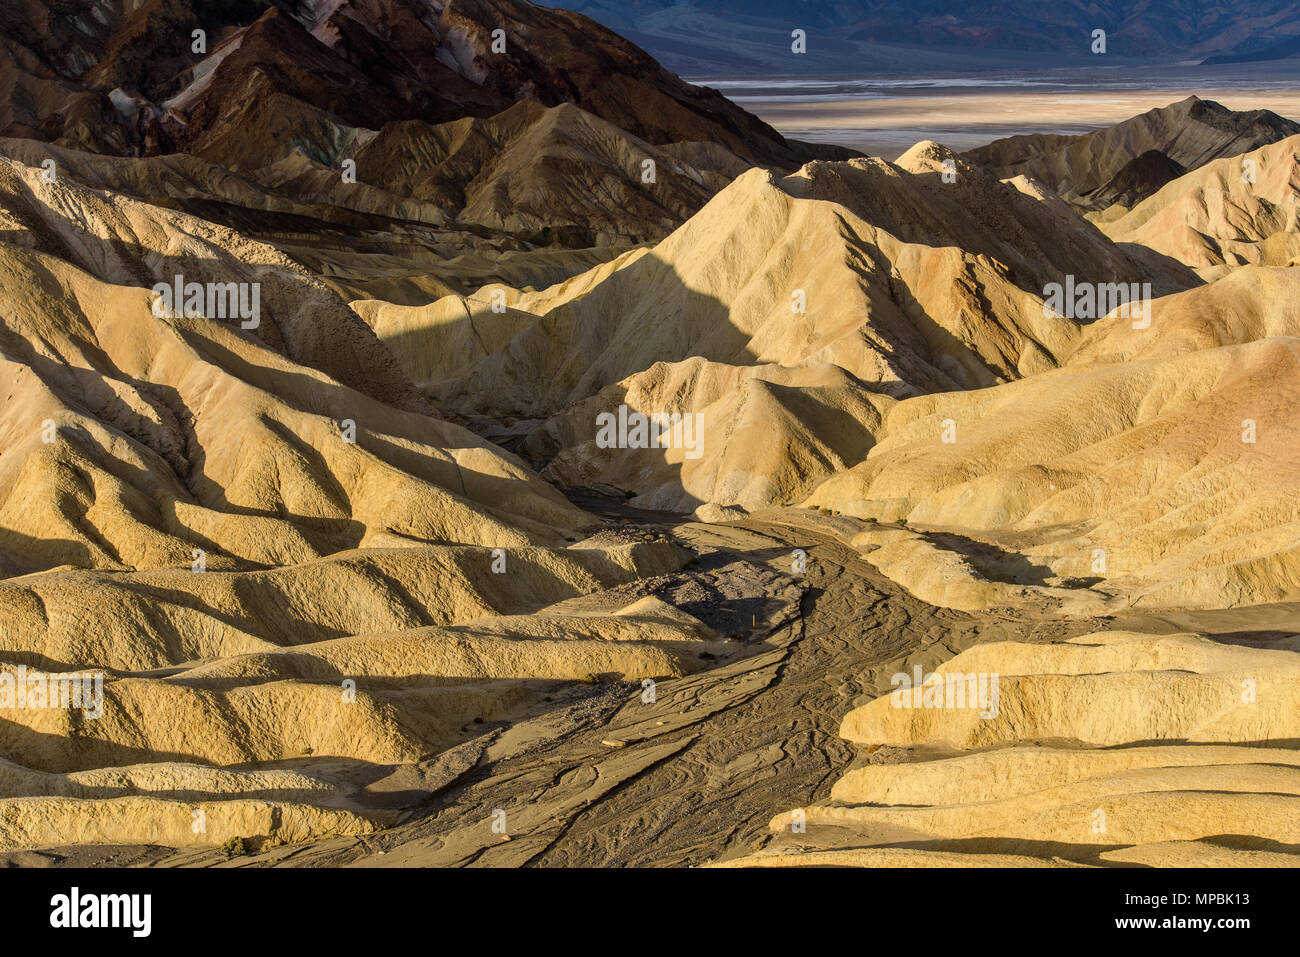 Sunrise Golden Valley - Golden morning sunlight shining on a colorful valley at the Badlands of Death Valley National Park, California, USA. Stock Photo